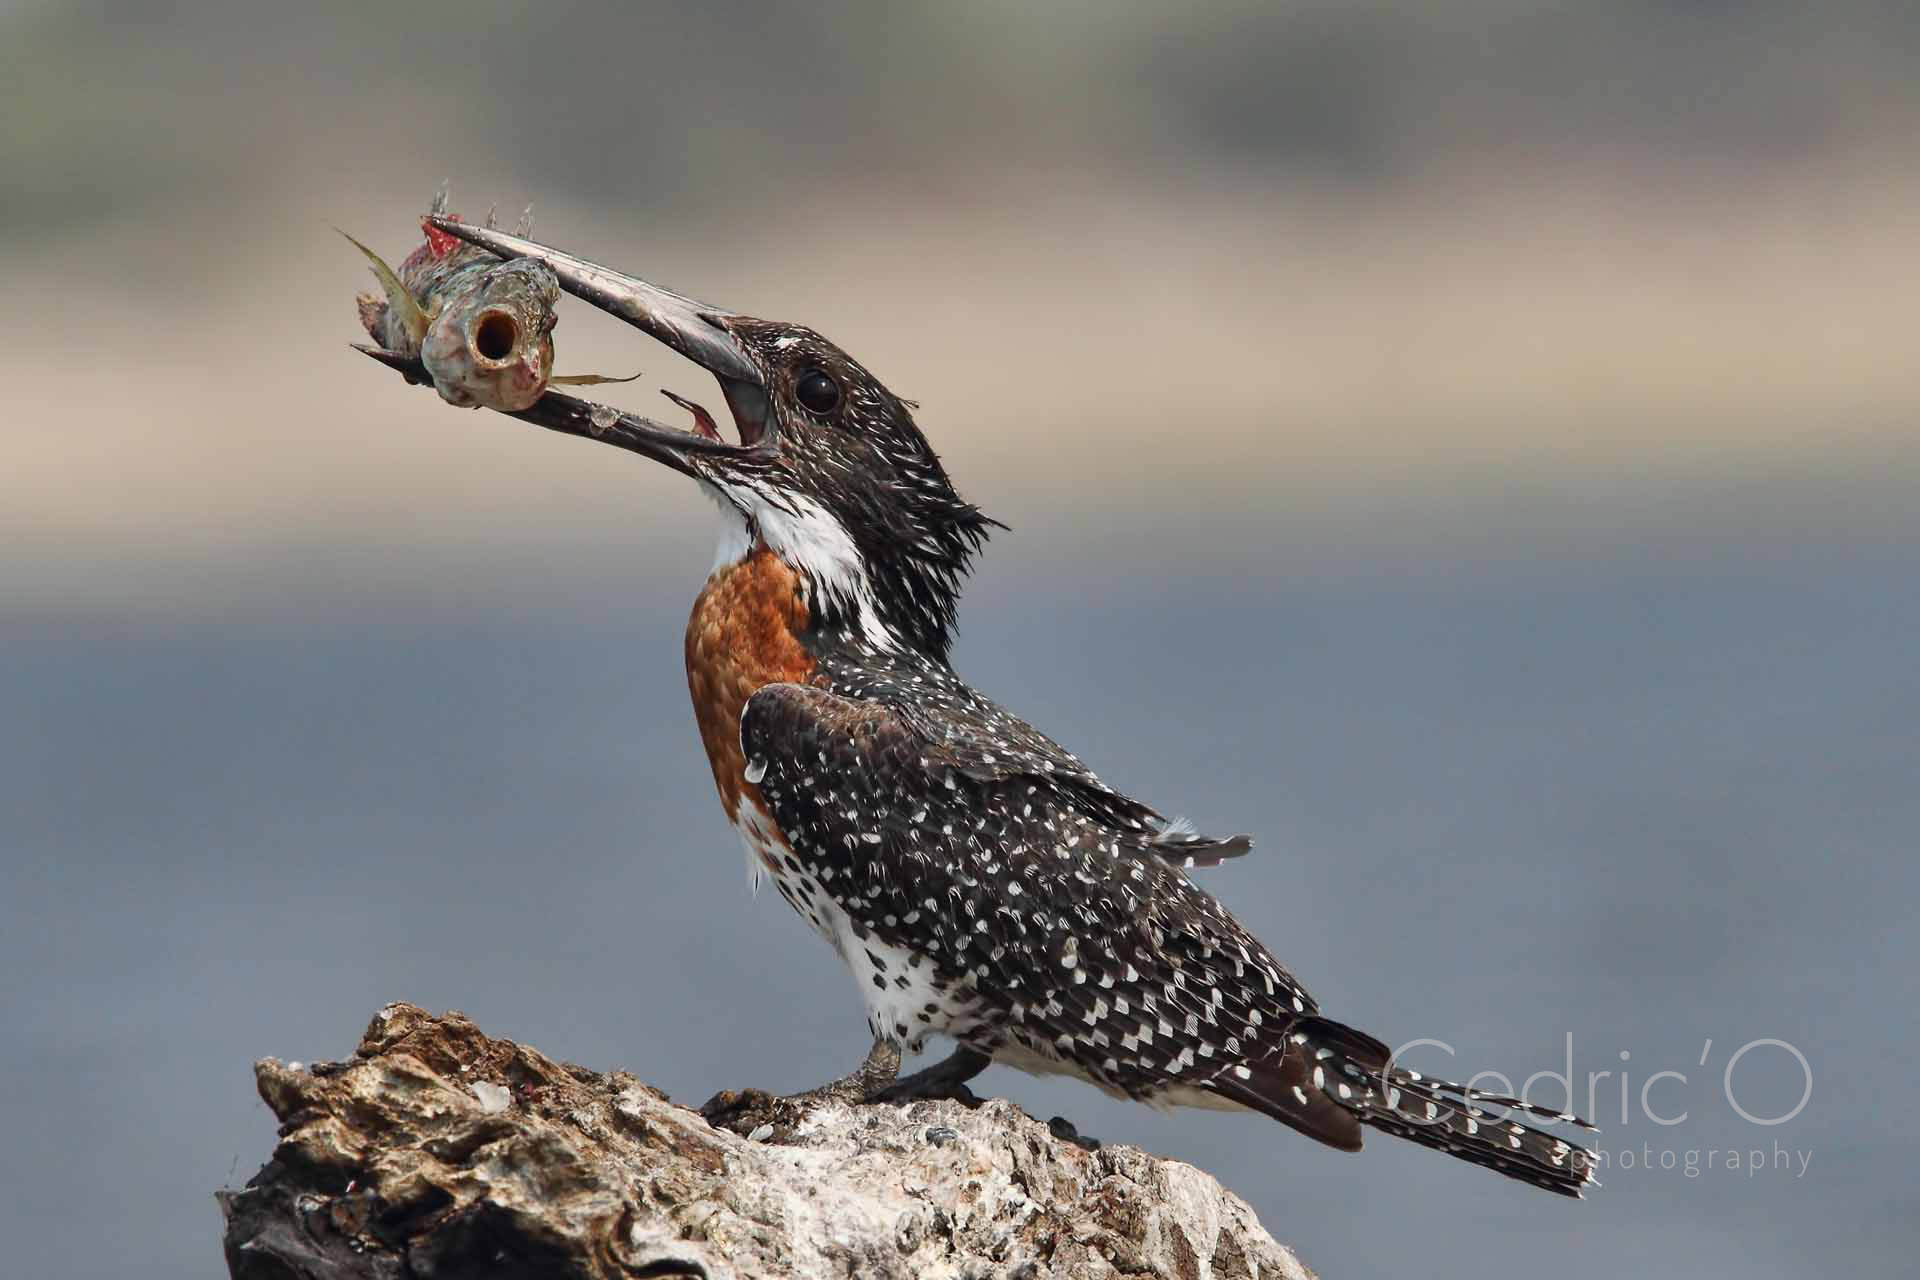 Oh ! A Giant Kingfisher